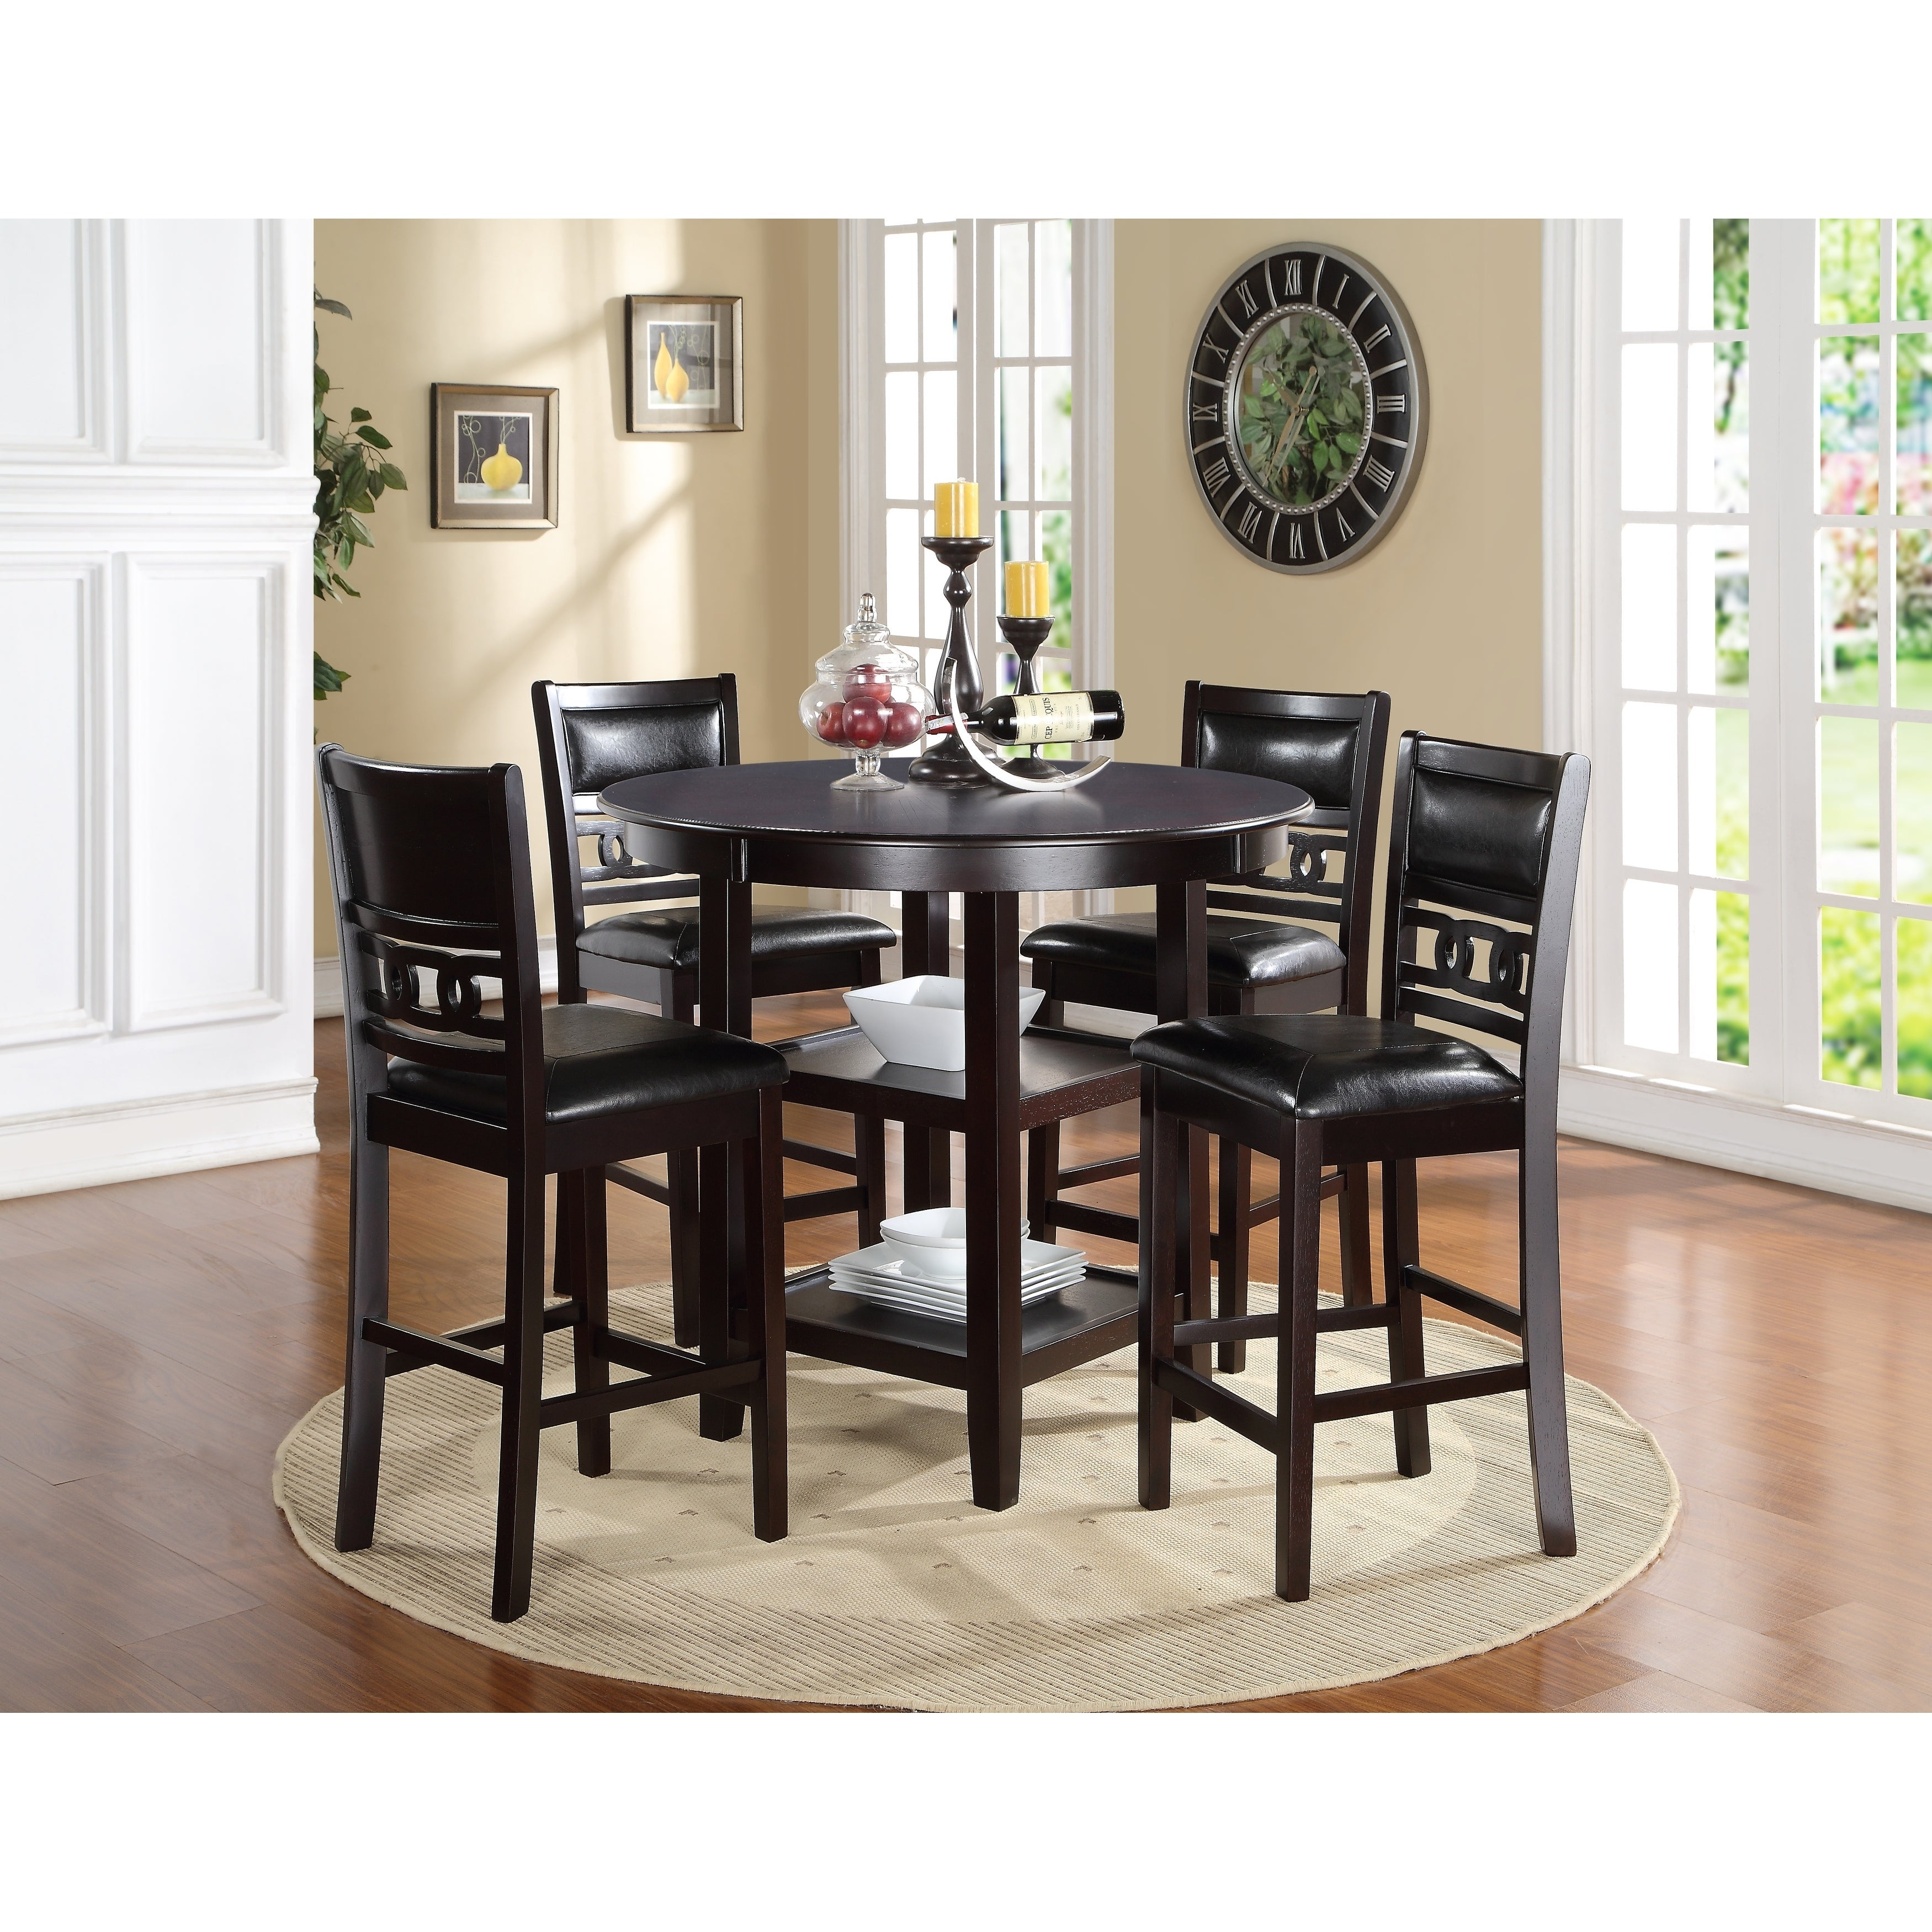 Picture of: Gia Ebony Counter Height Round Table 5 Piece Dining Set Overstock 20222785